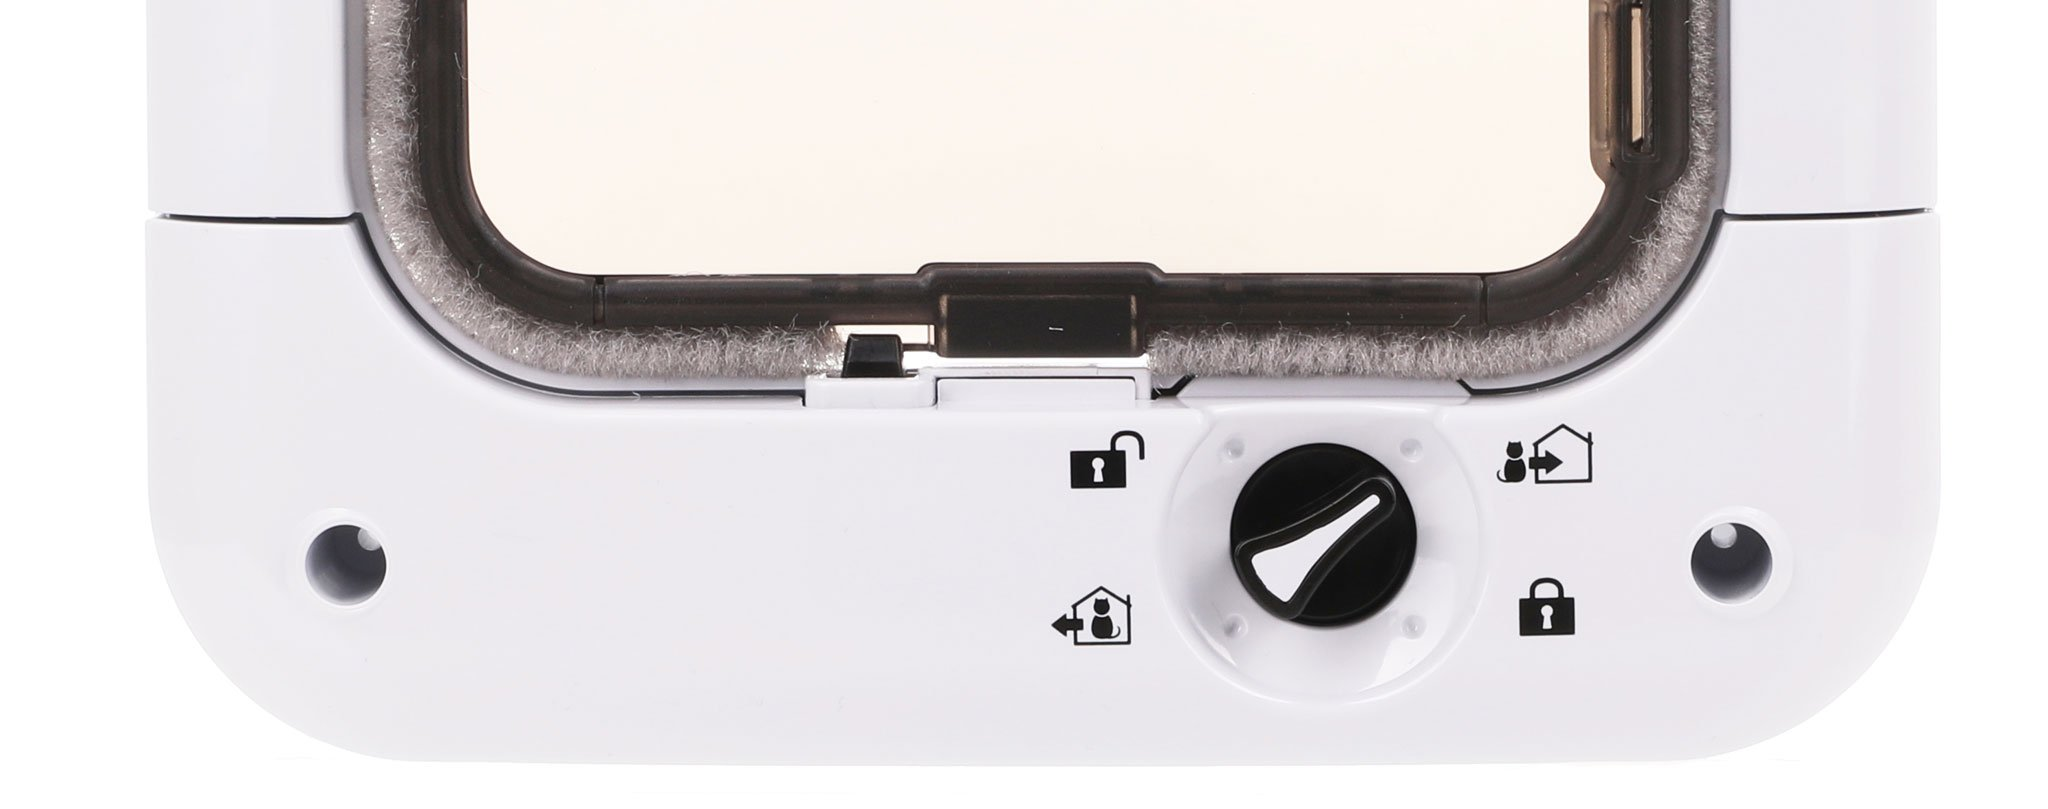 Simple to use 4 way lock system.